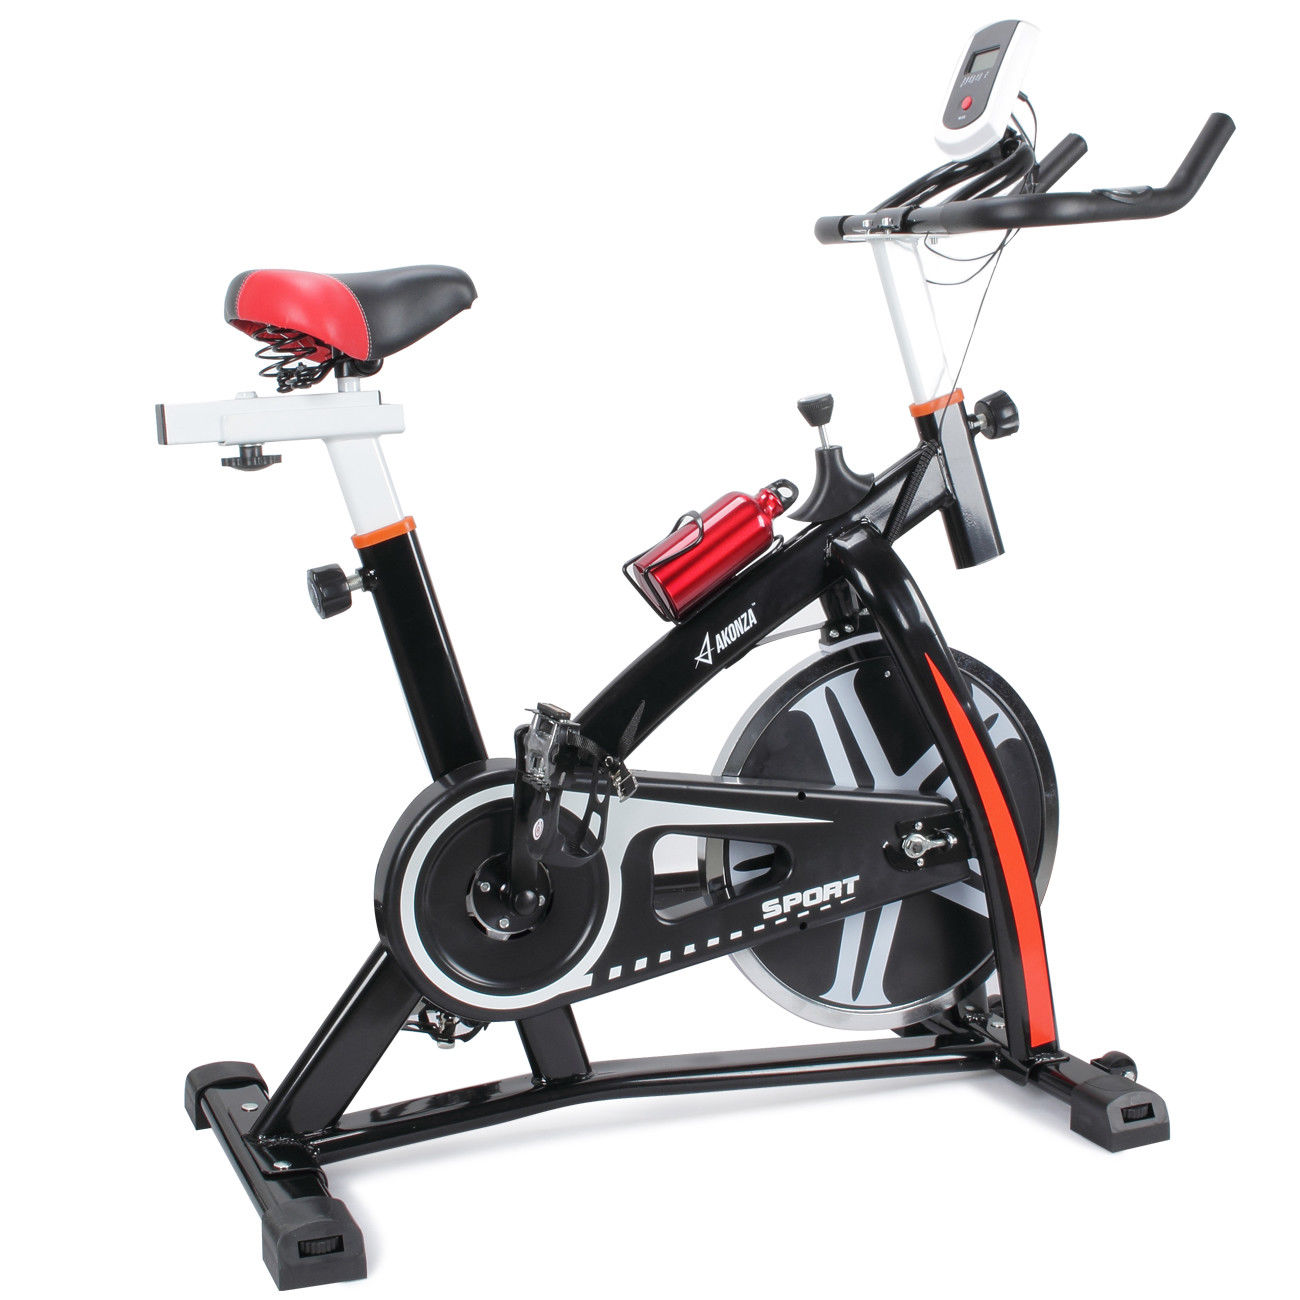 New bicycle cycling fitness exercise stationary bike